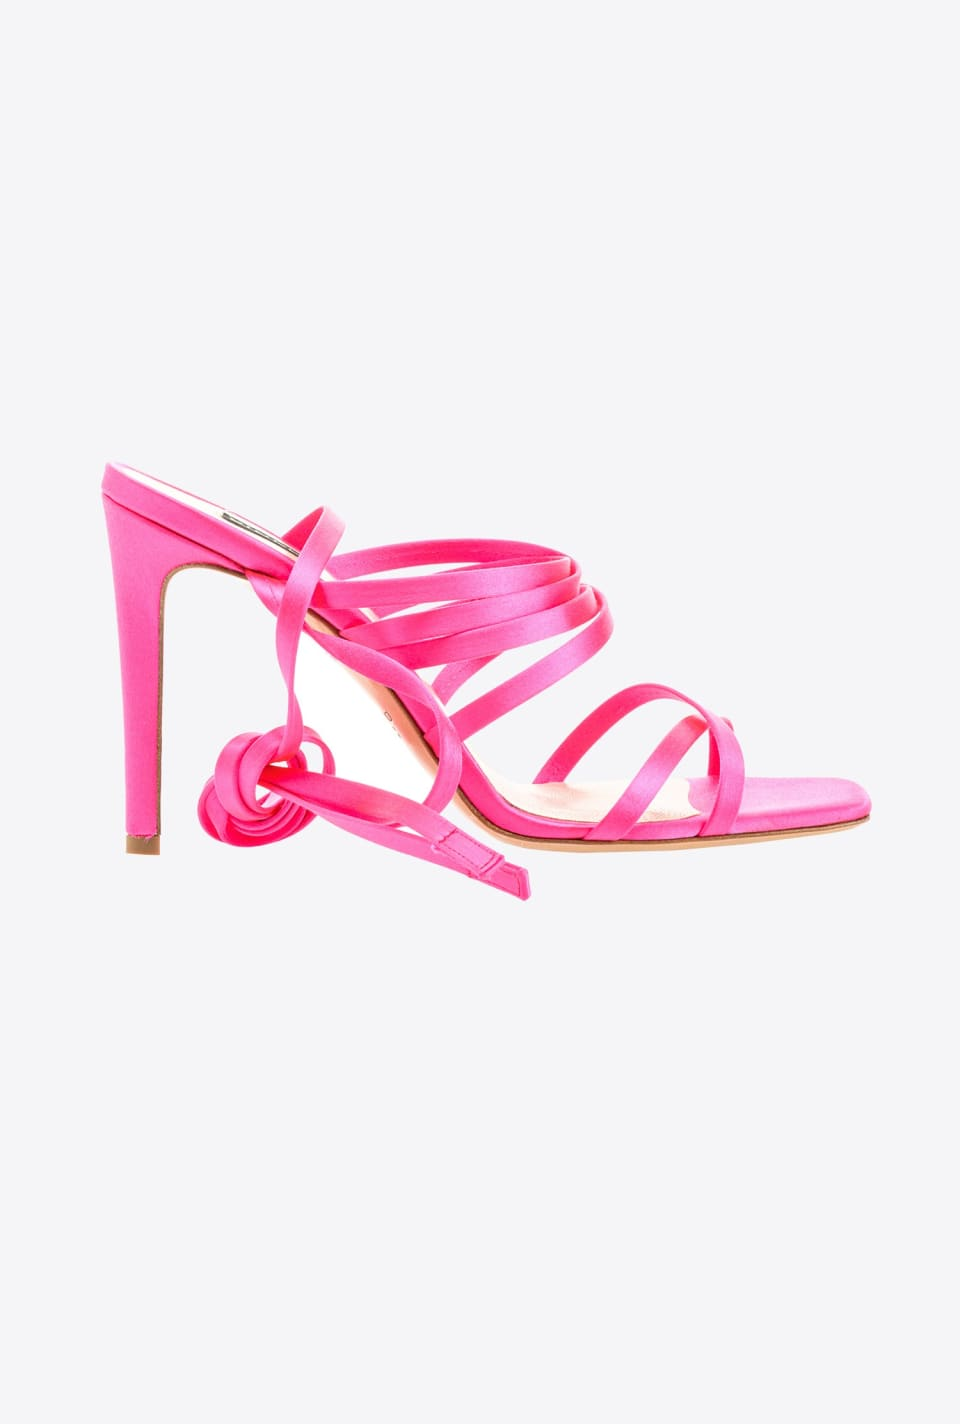 Sandals with satin ribbons - Pinko